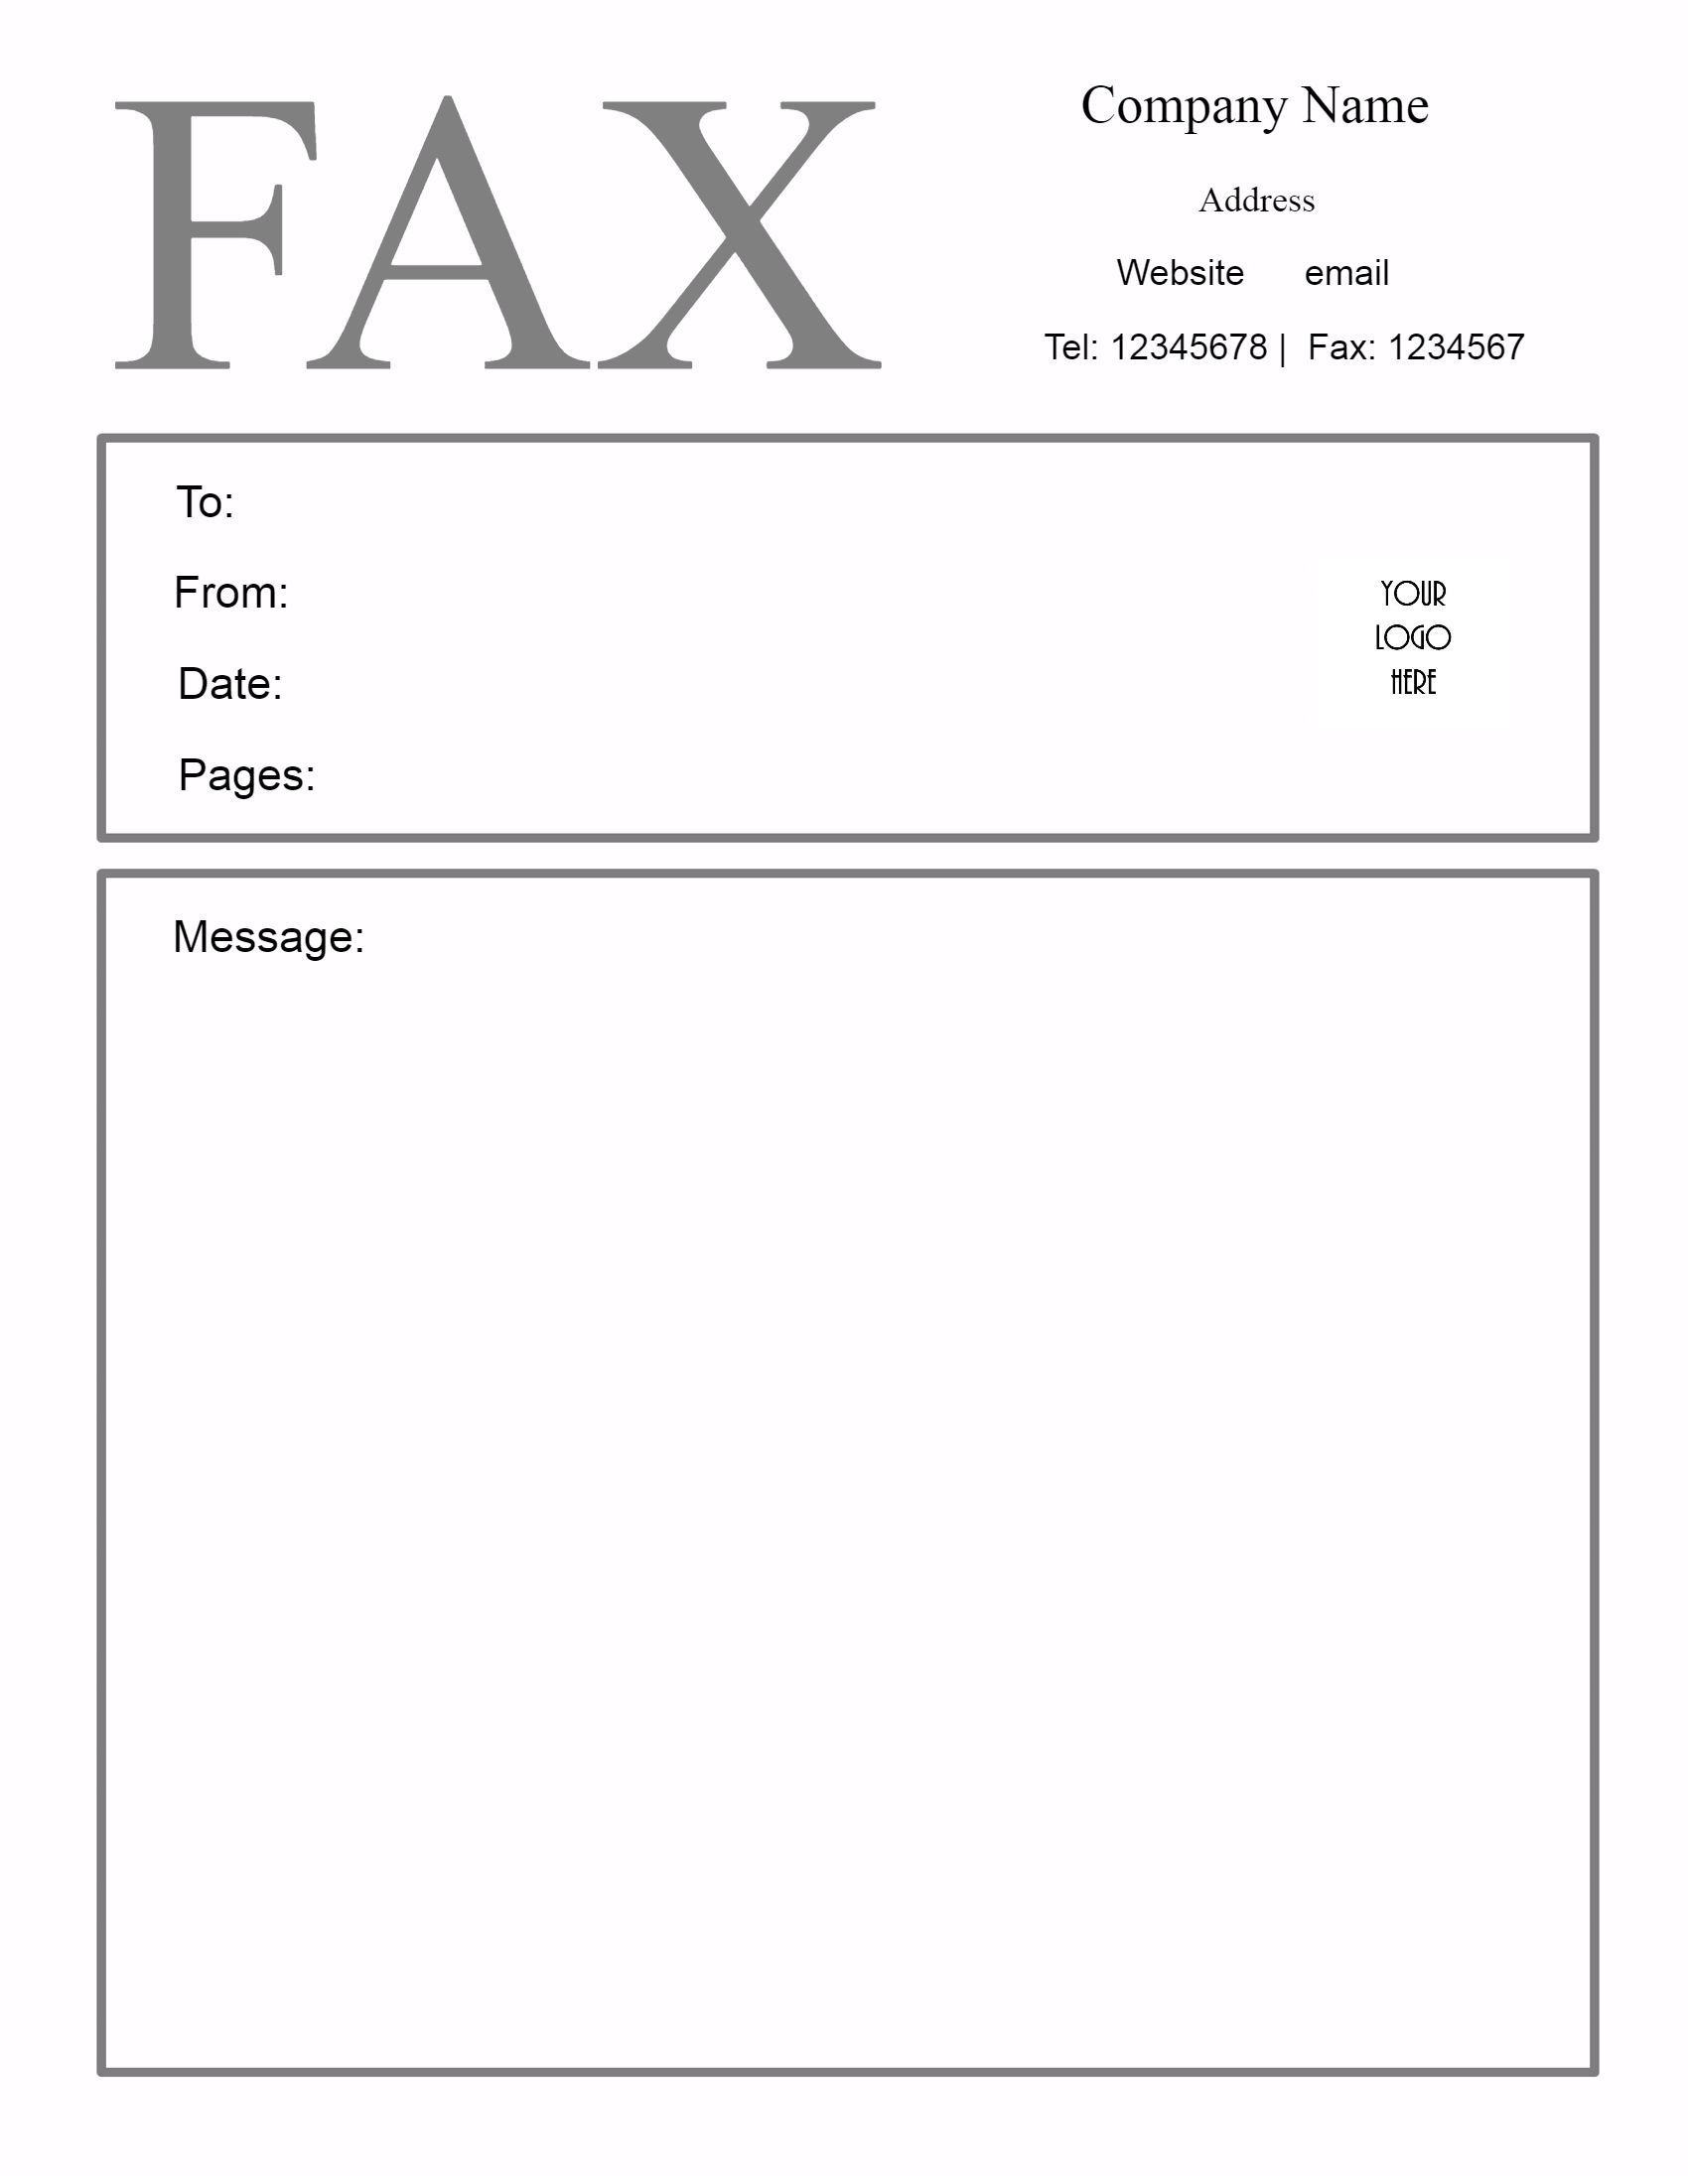 Free Fax Cover Sheet Template | Customize Online Then Print - Free Printable Cover Letter For Fax